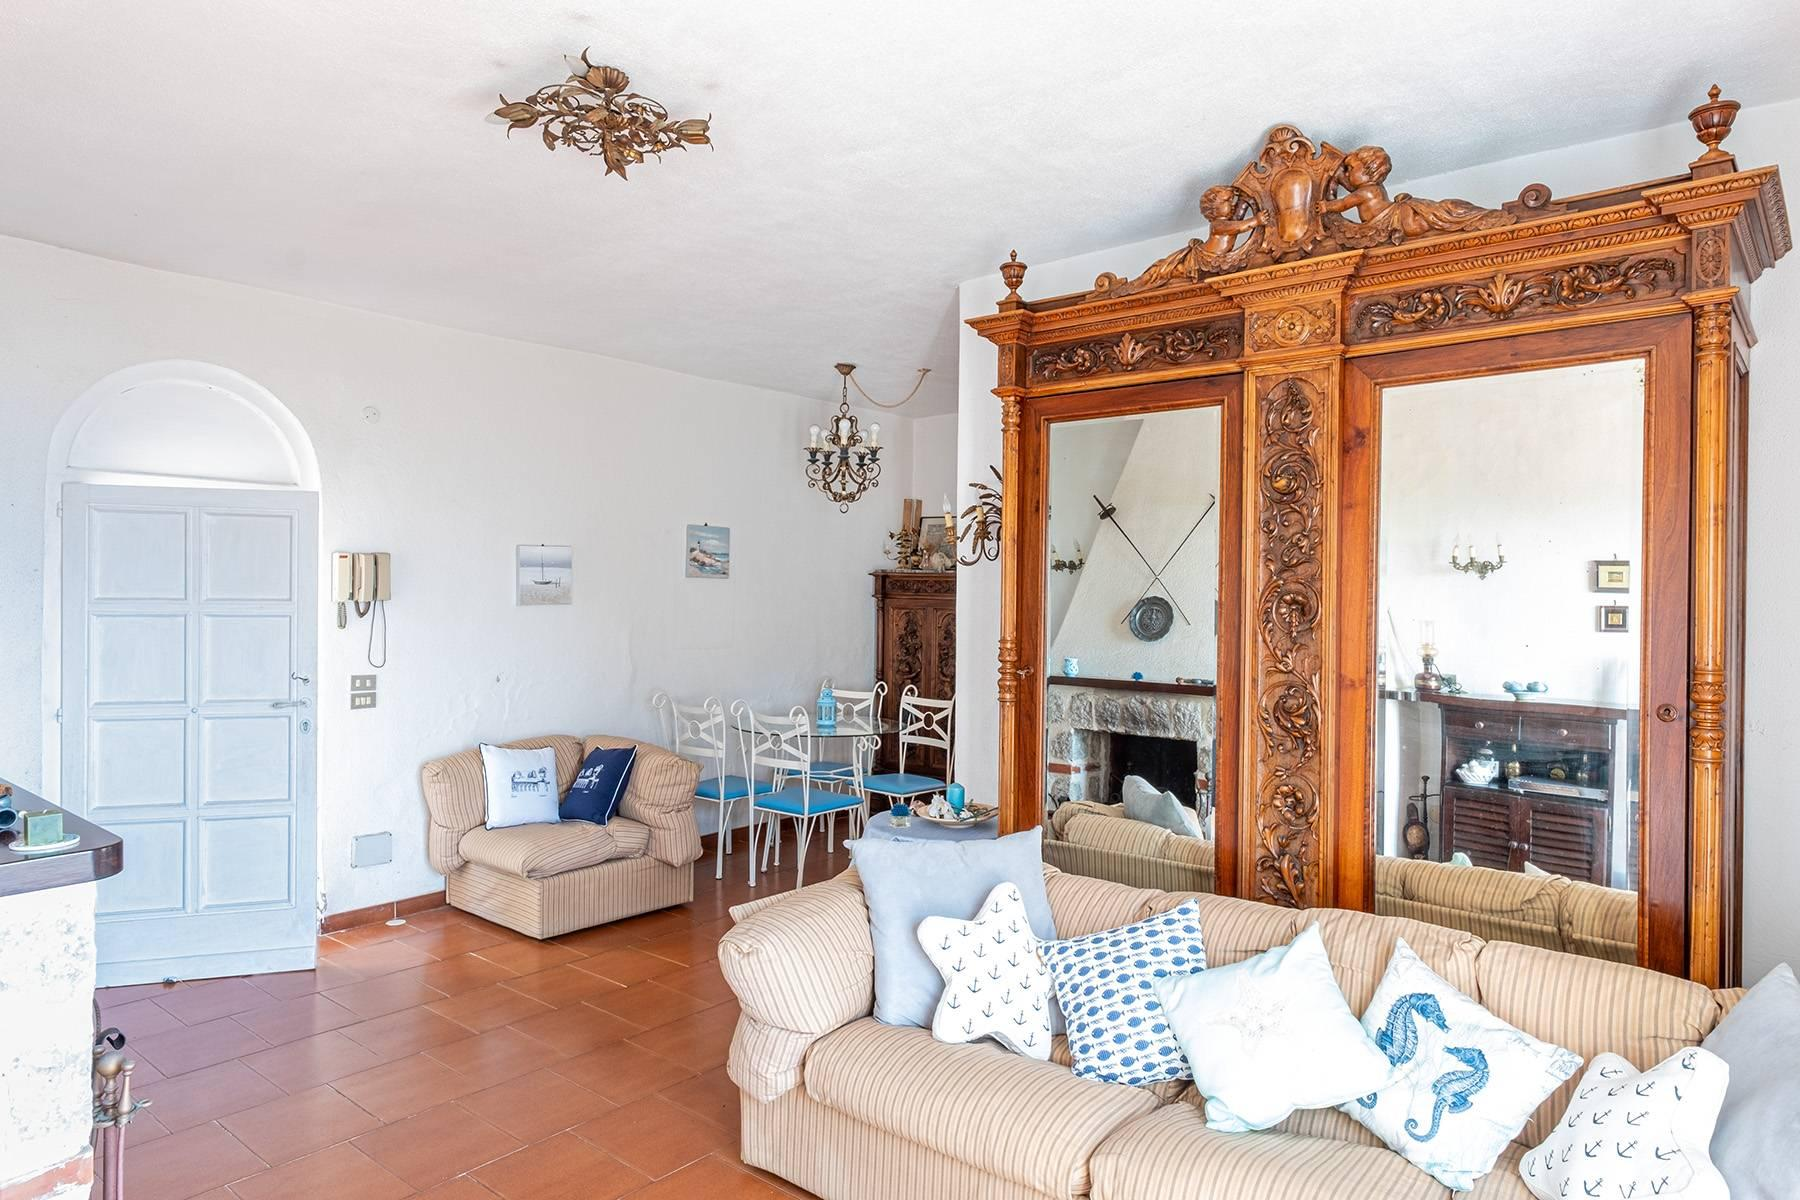 Charming villa with olive grove and swimming pool overlooking the sea - 11